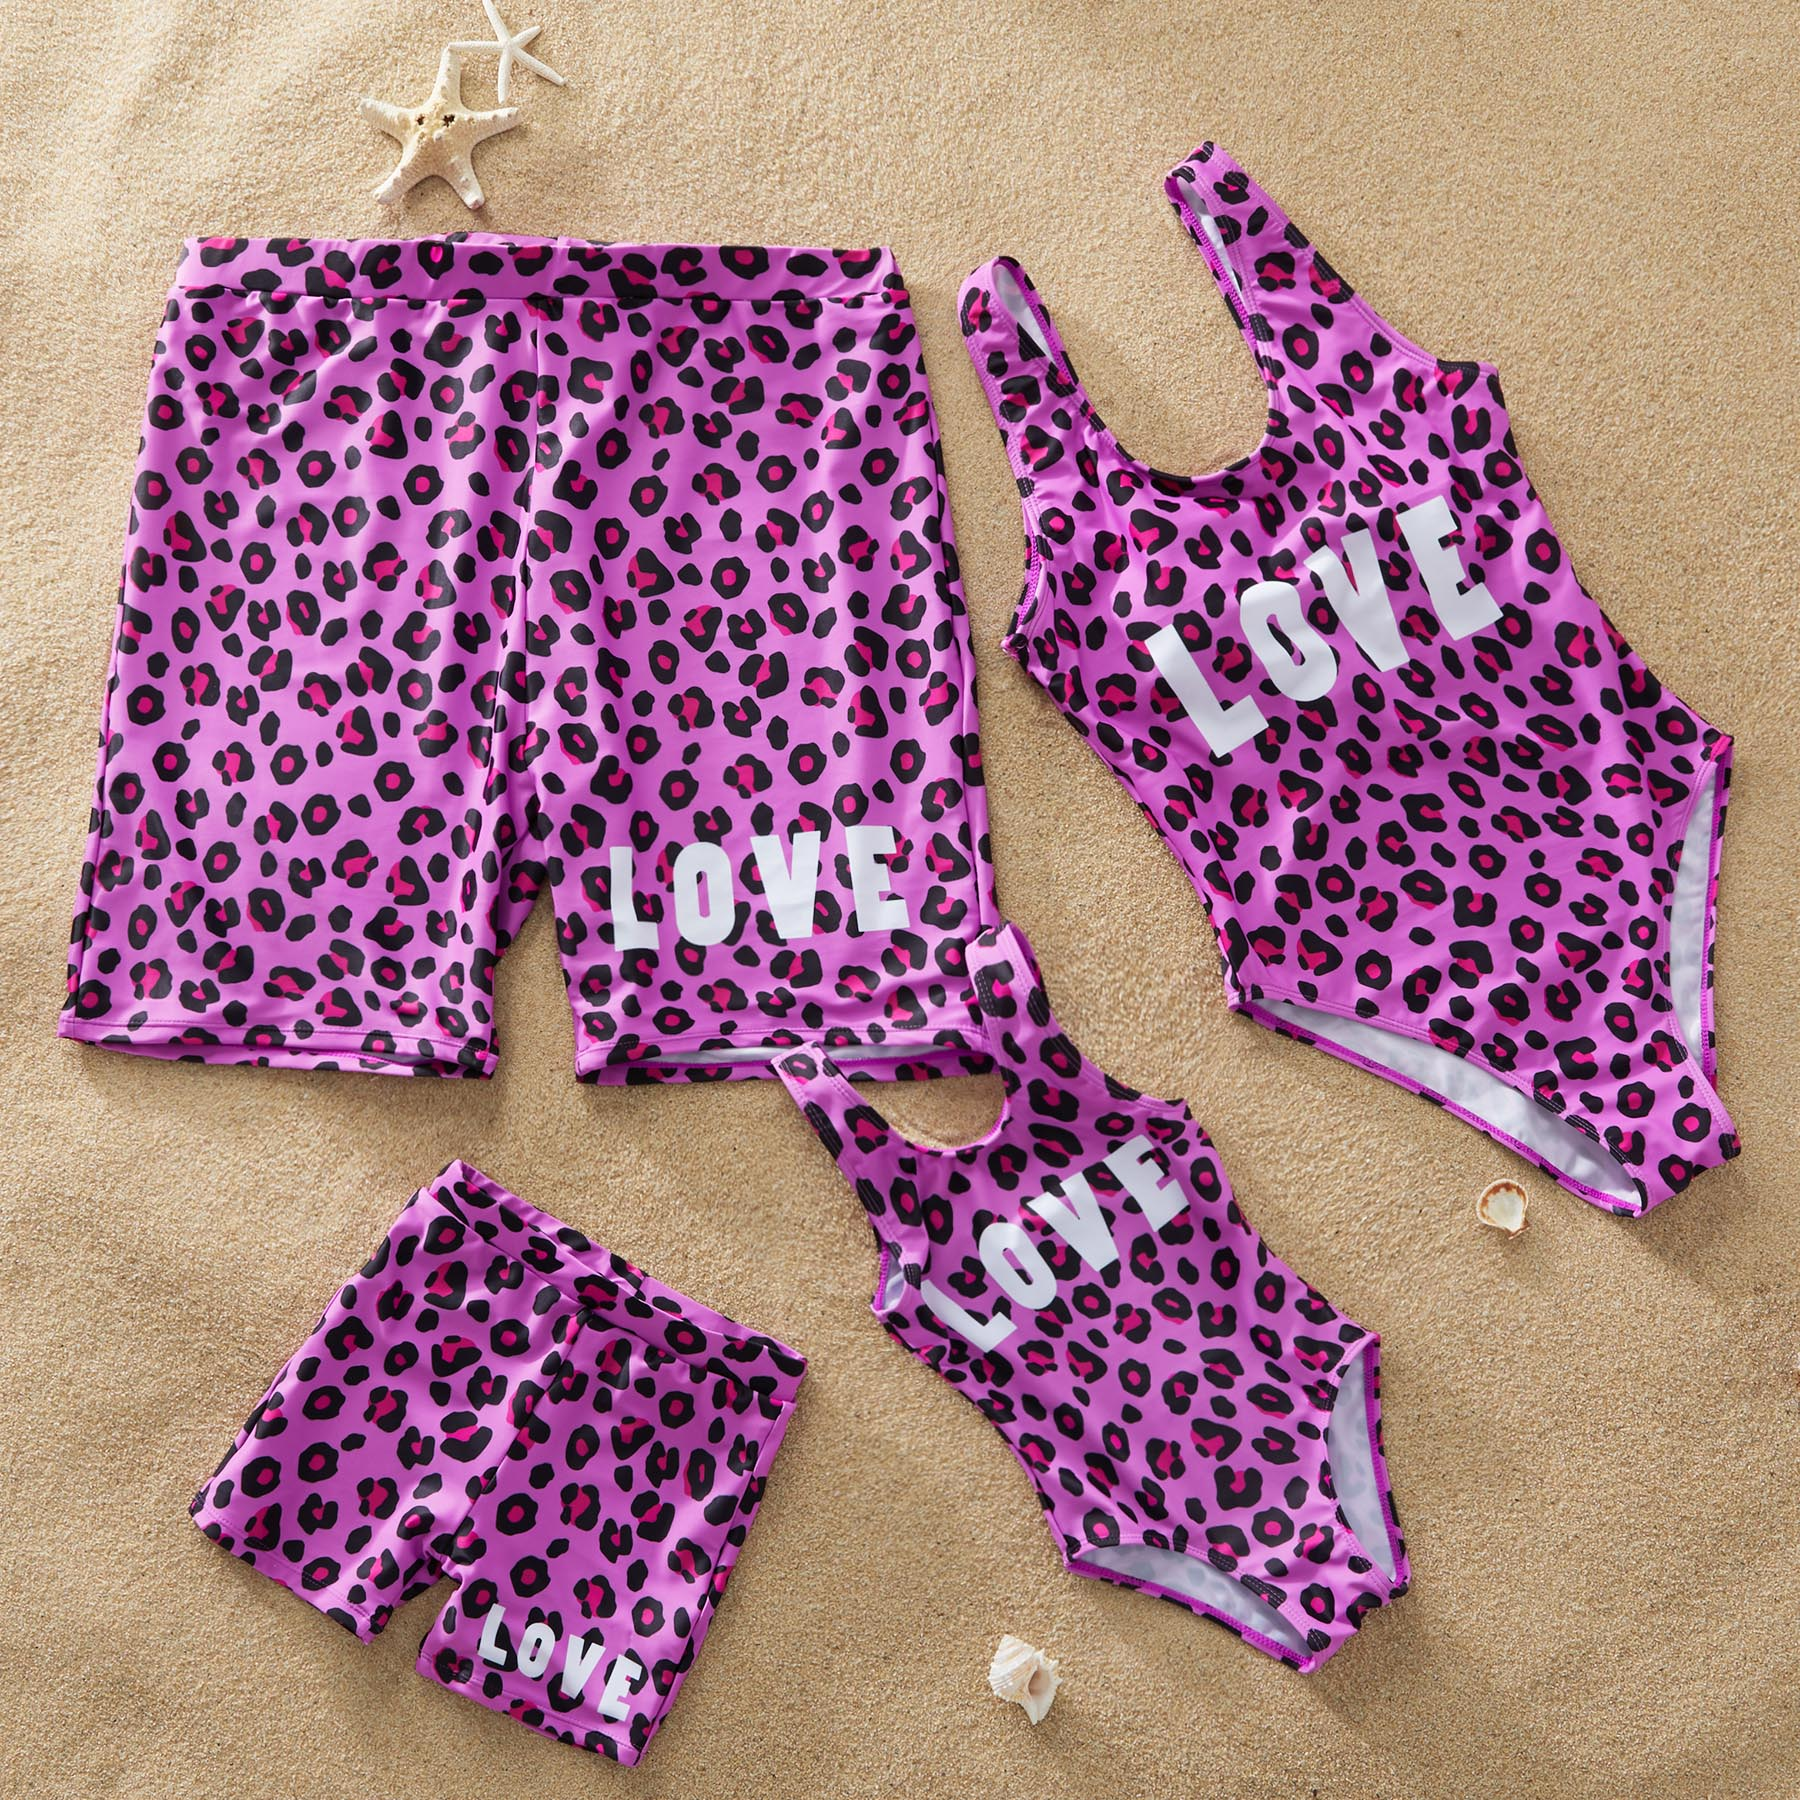 Leopard Love One-Piece Matching Swimsuit for Family